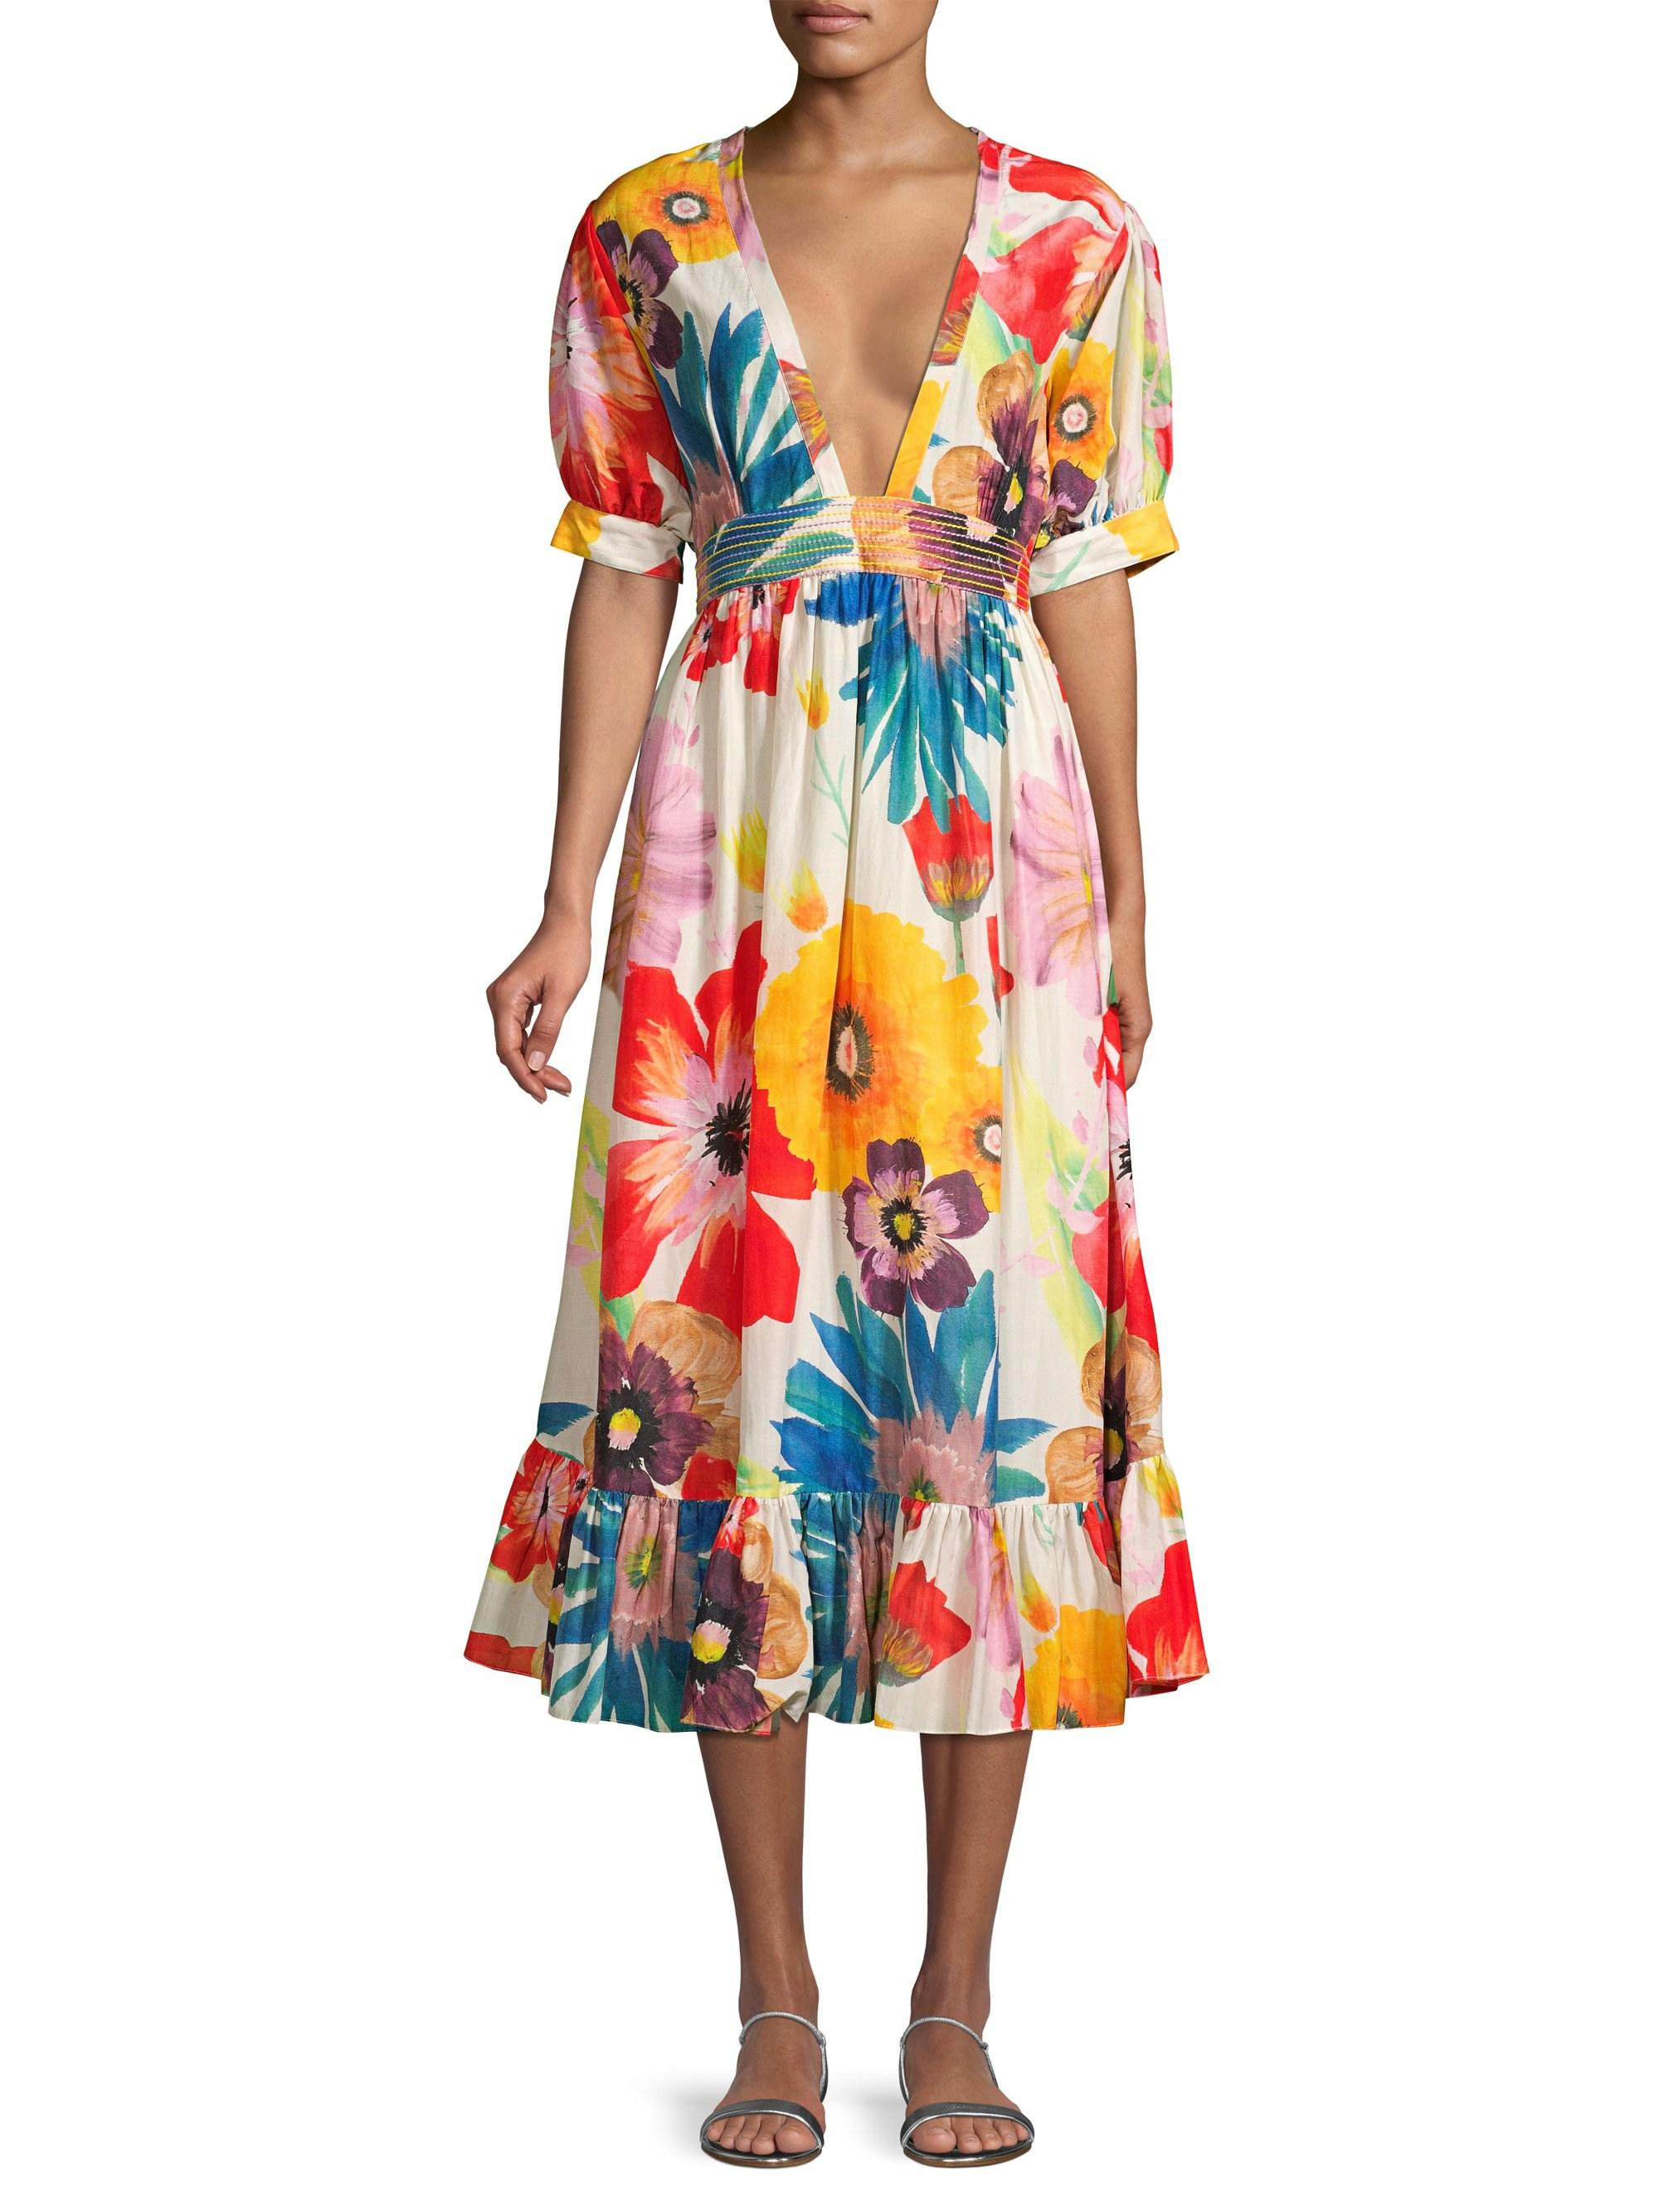 go bold with this  midi dress  full of vibrant colors and oversized florals!